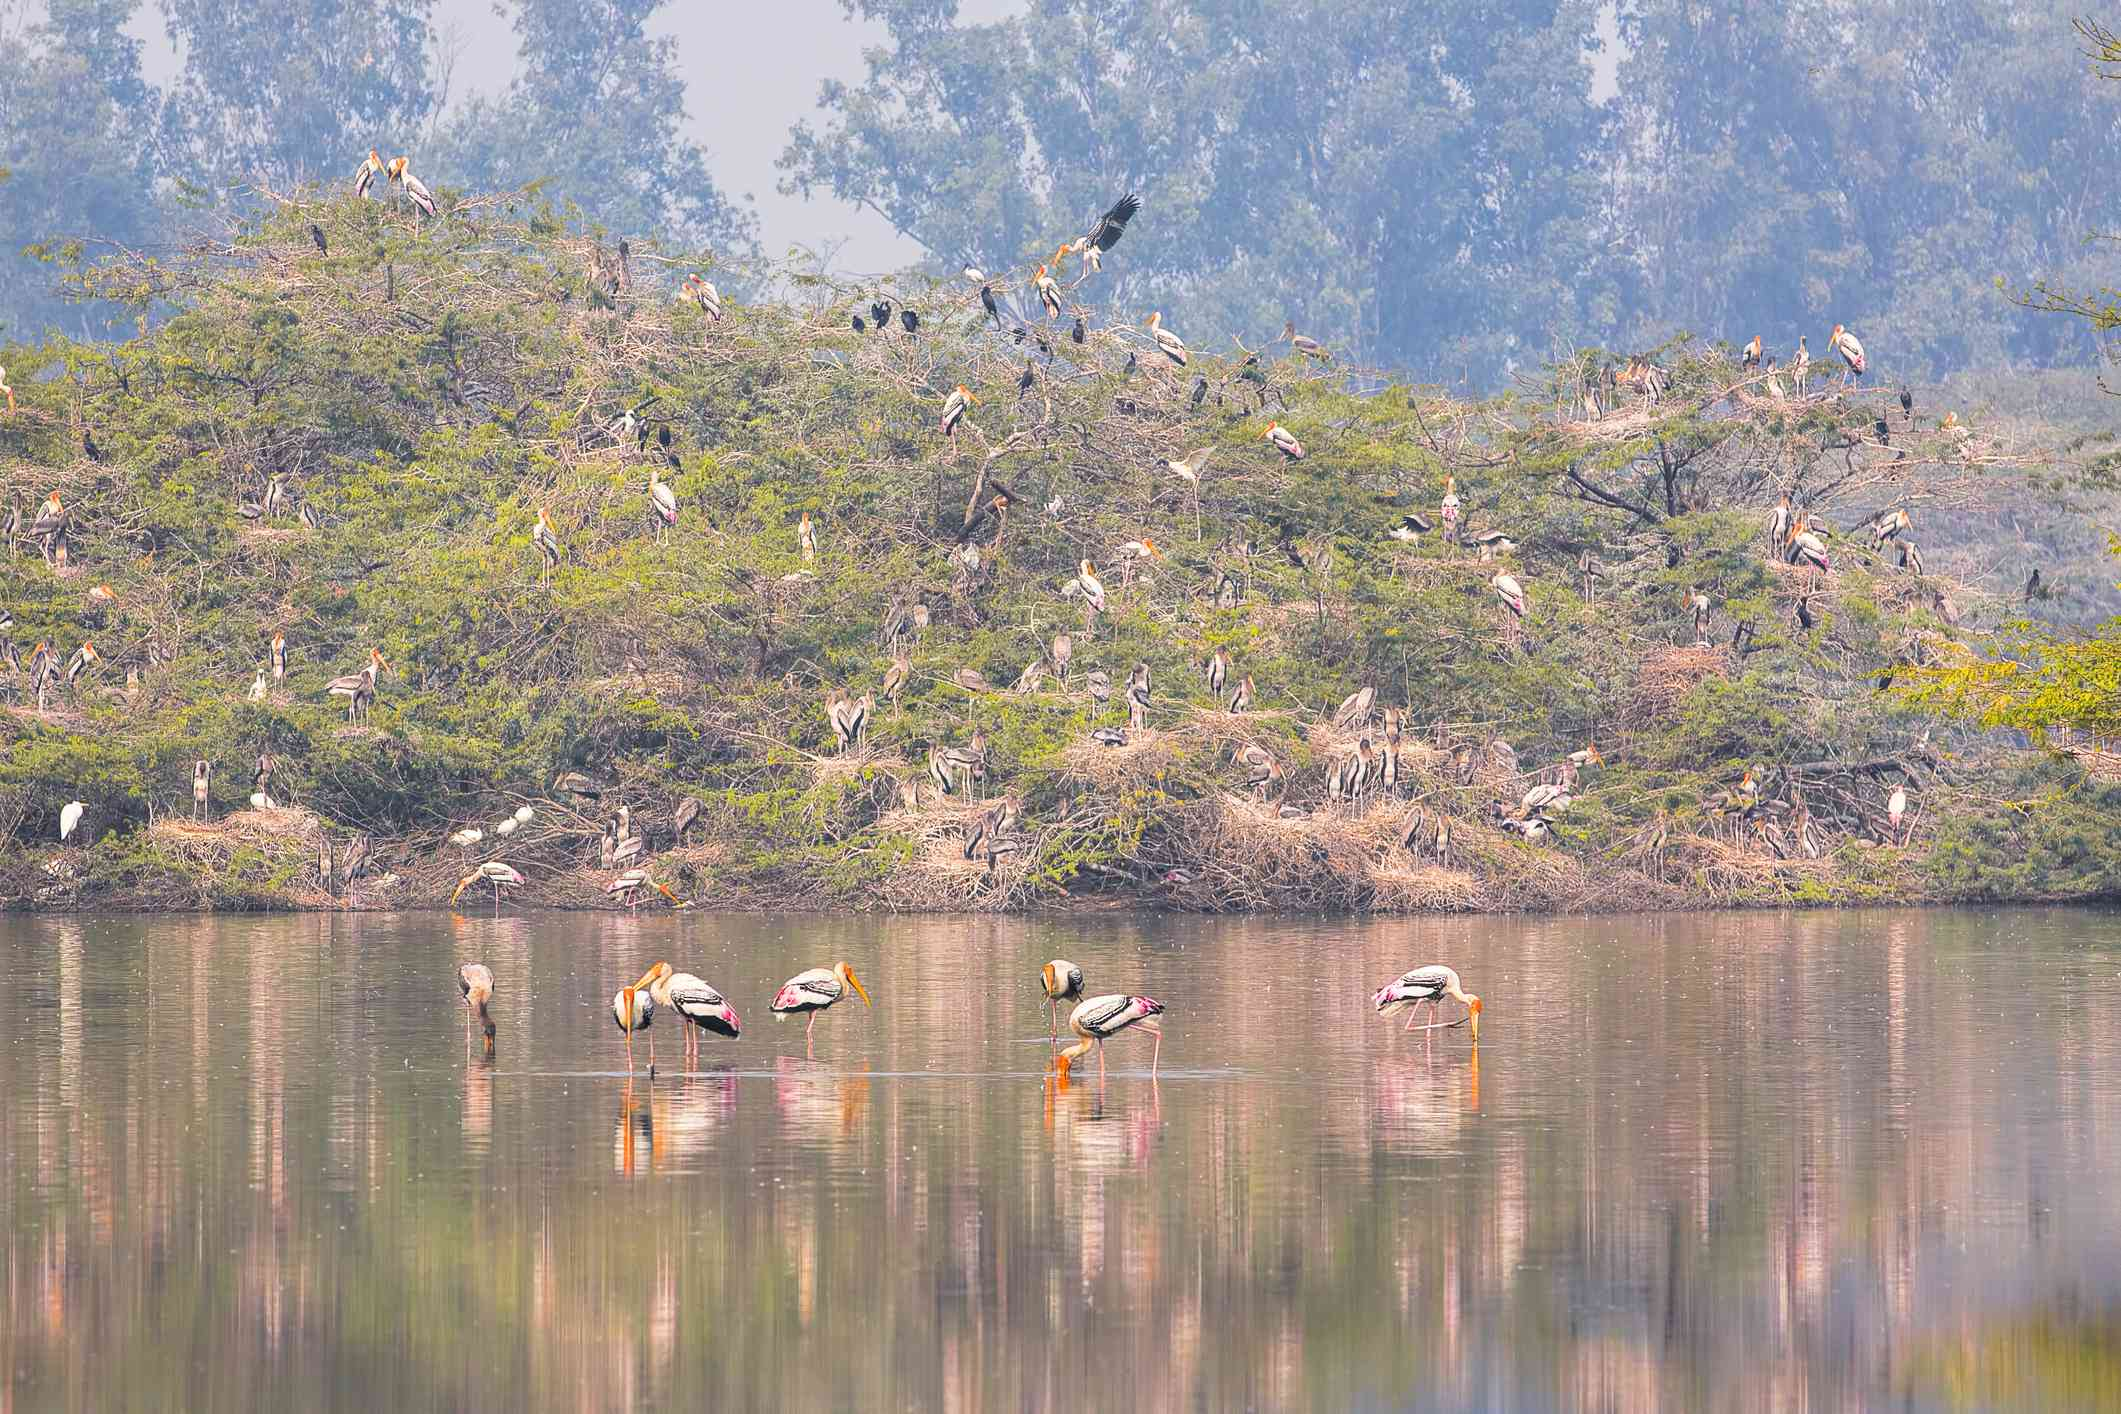 Painted Storks nesting at Sultanpur Bird Sanctuary